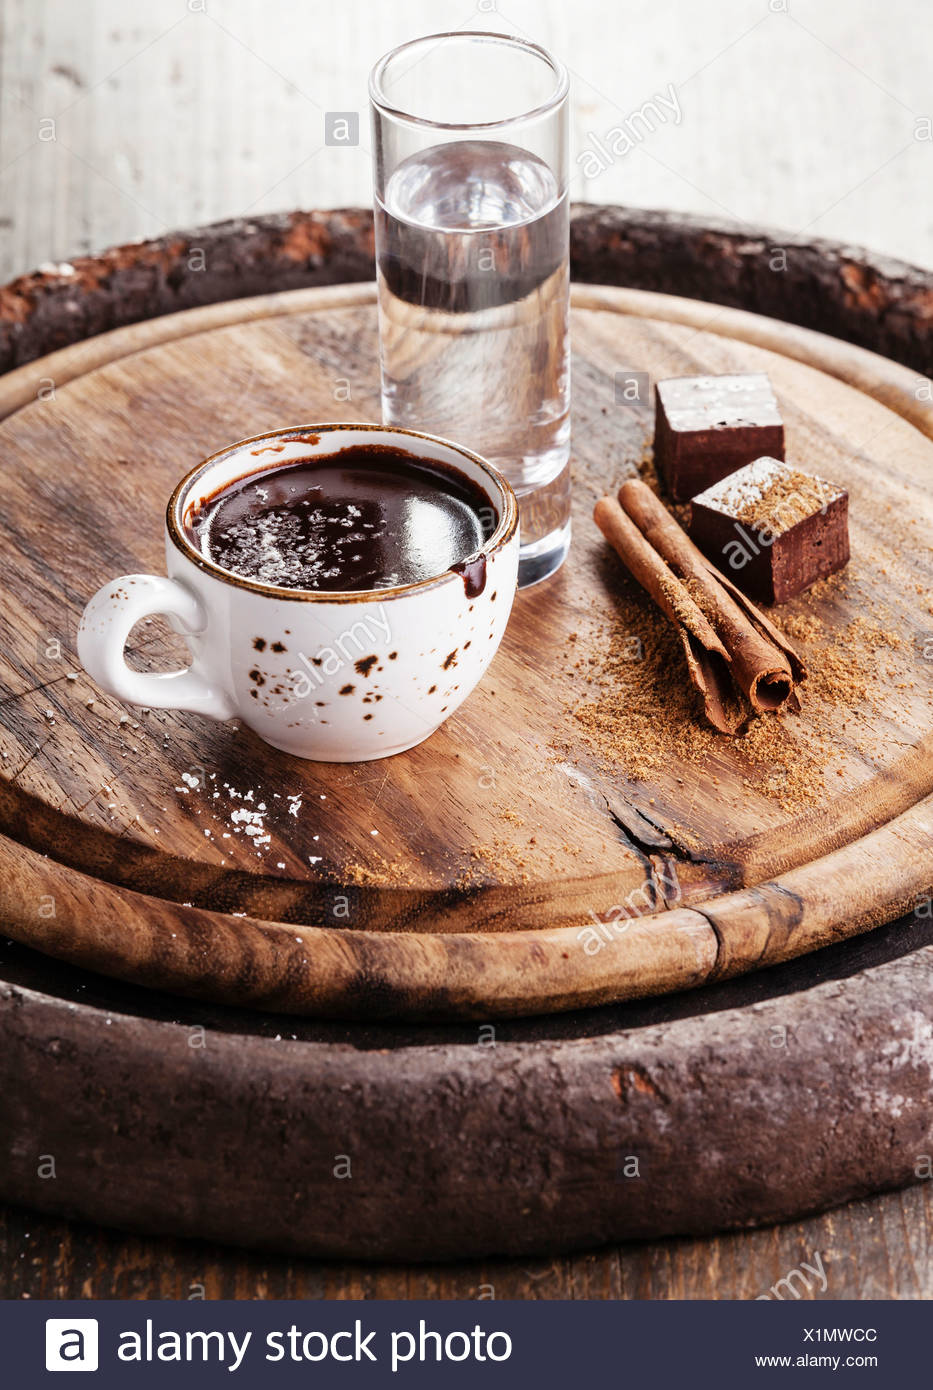 Hot chocolate with spices and water - Stock Image